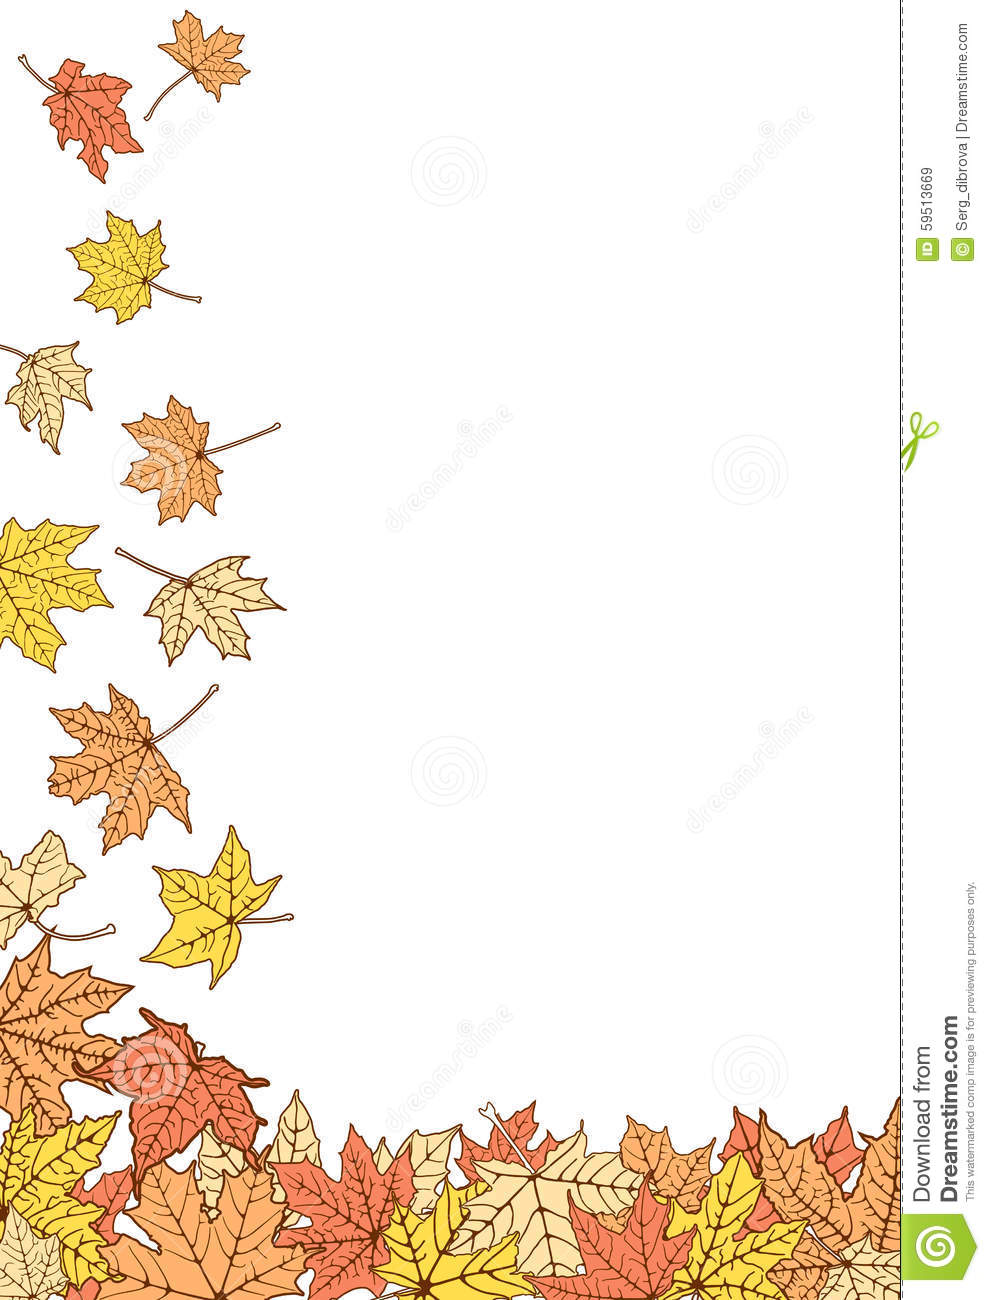 color autumn leaves template stock vector illustration of banner